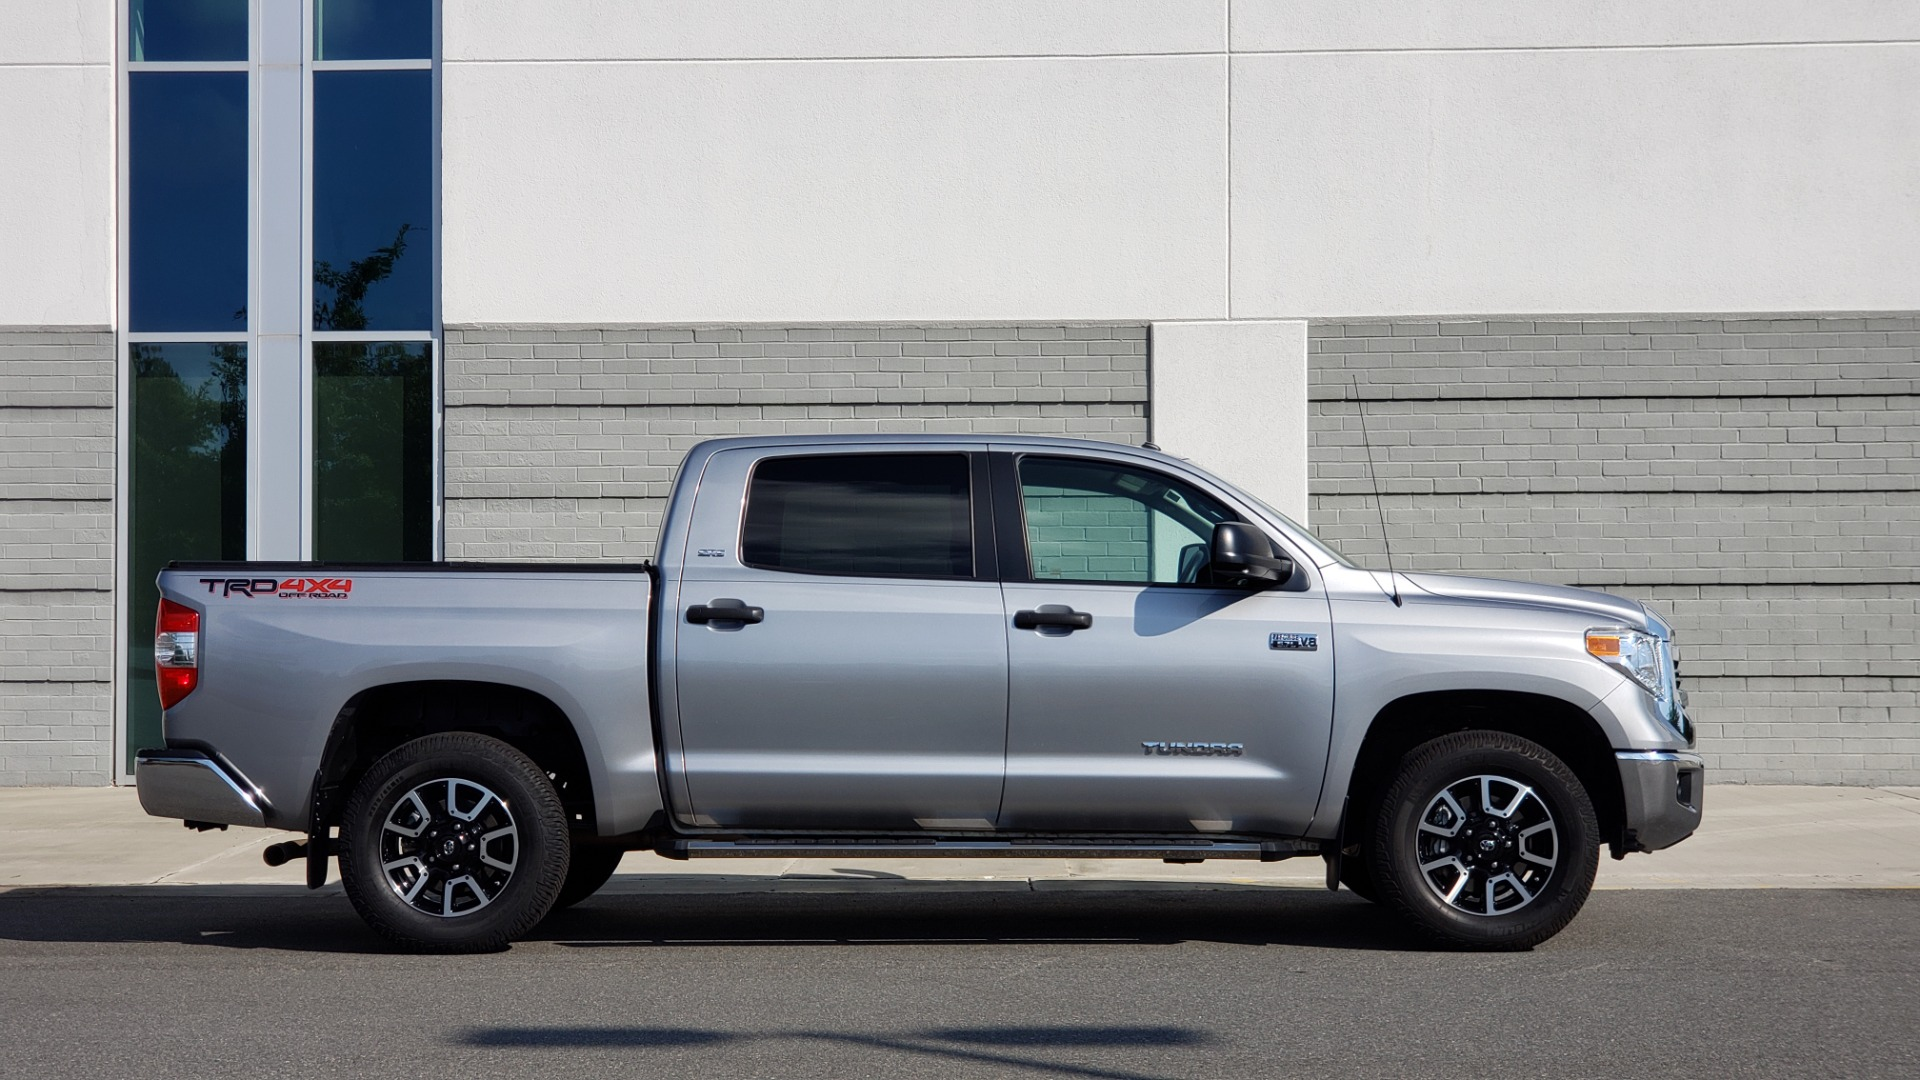 Used 2017 Toyota TUNDRA 4WD SR5 CREWMAX / 5.7L V8 / 6-SPD AUTO / NAV / REARVIEW for sale $44,395 at Formula Imports in Charlotte NC 28227 8